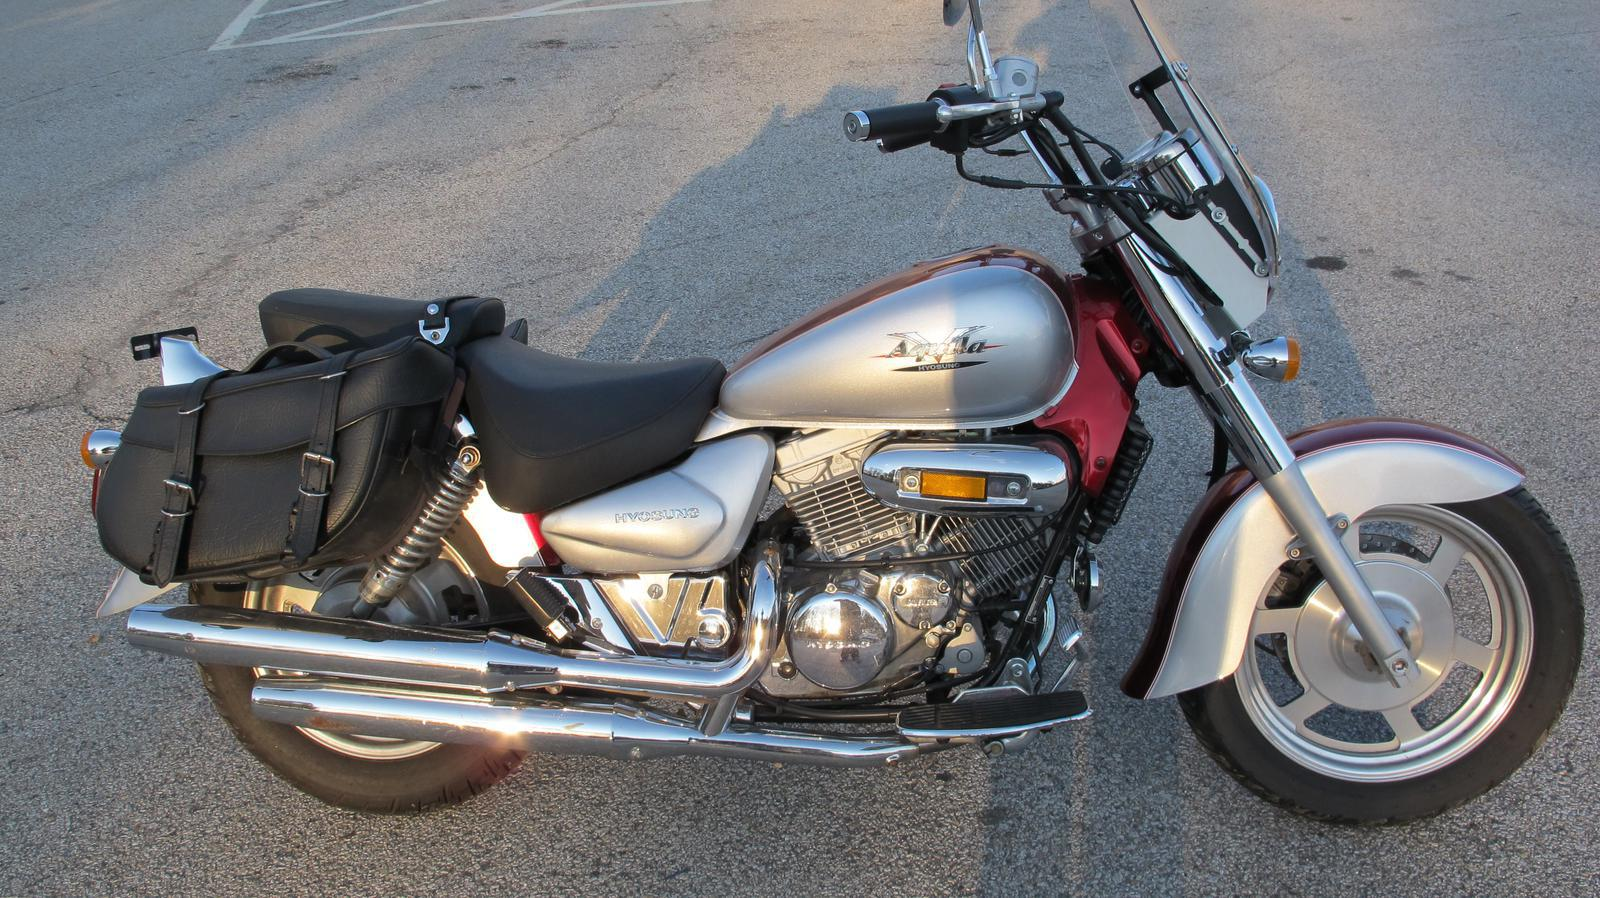 2005 Hyosung GV250, motorcycle listing